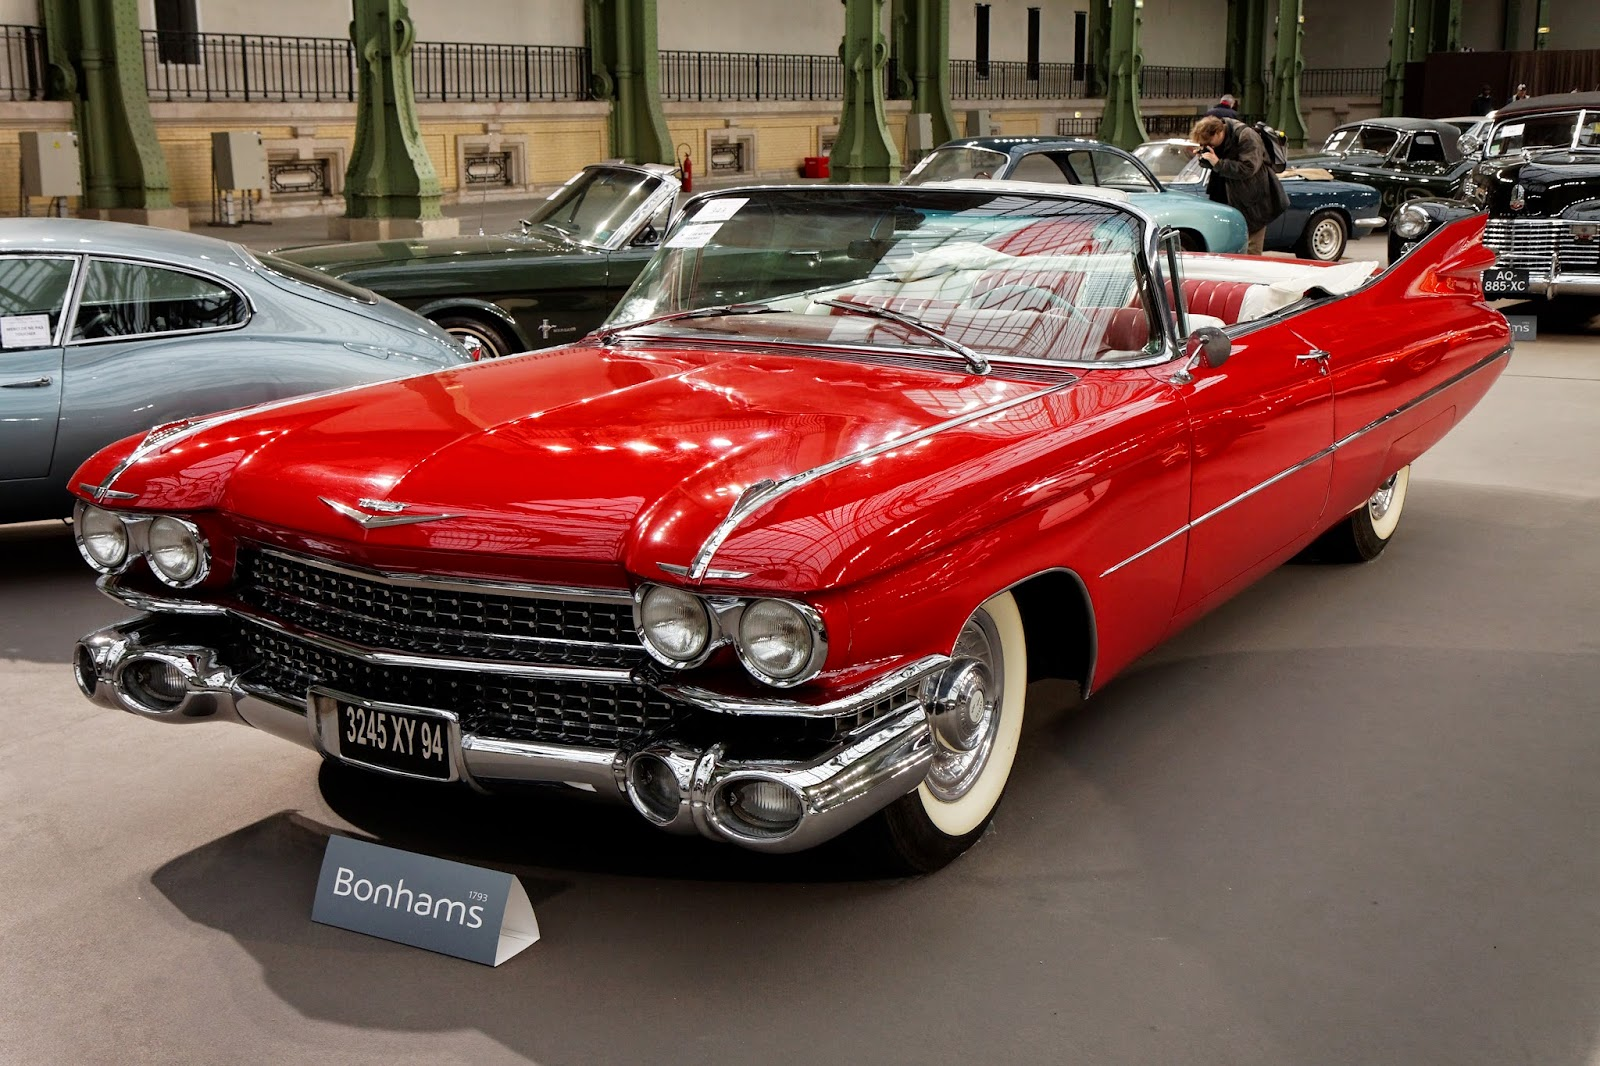 red cadillac bonhams